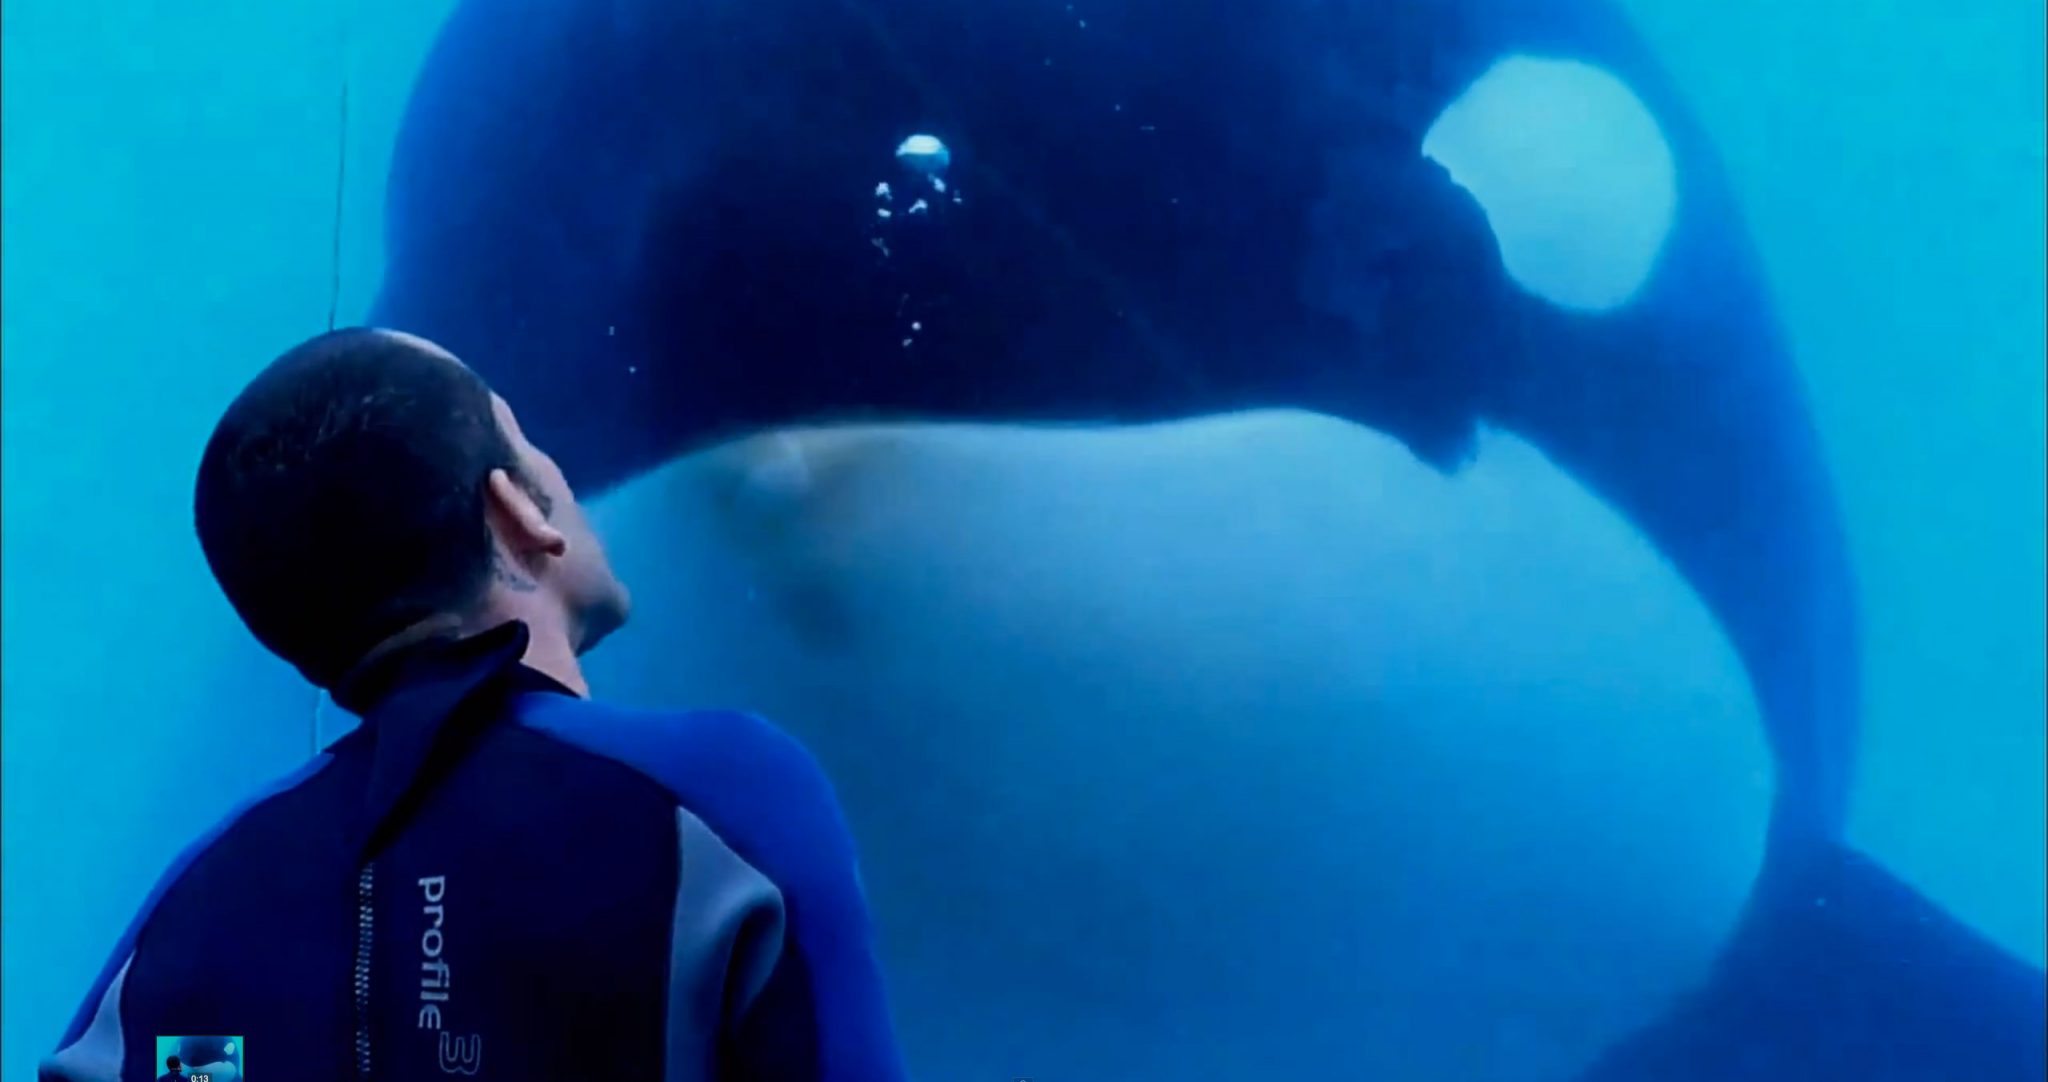 film review blackfish 2013 film blerg